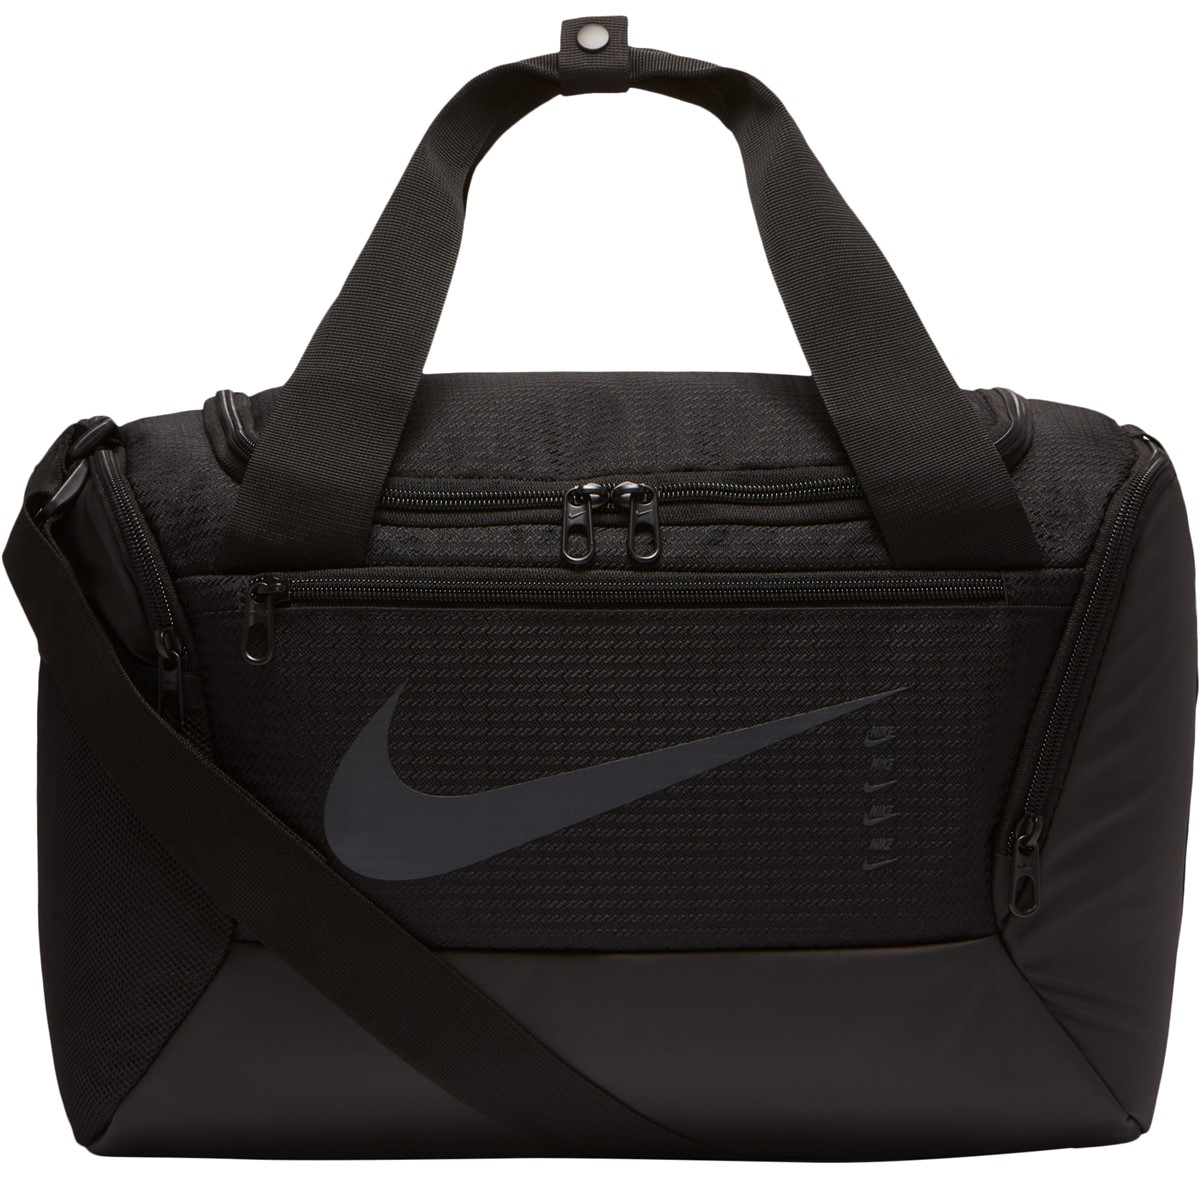 Brasilia 9.0 XS Duffle Bag in Black